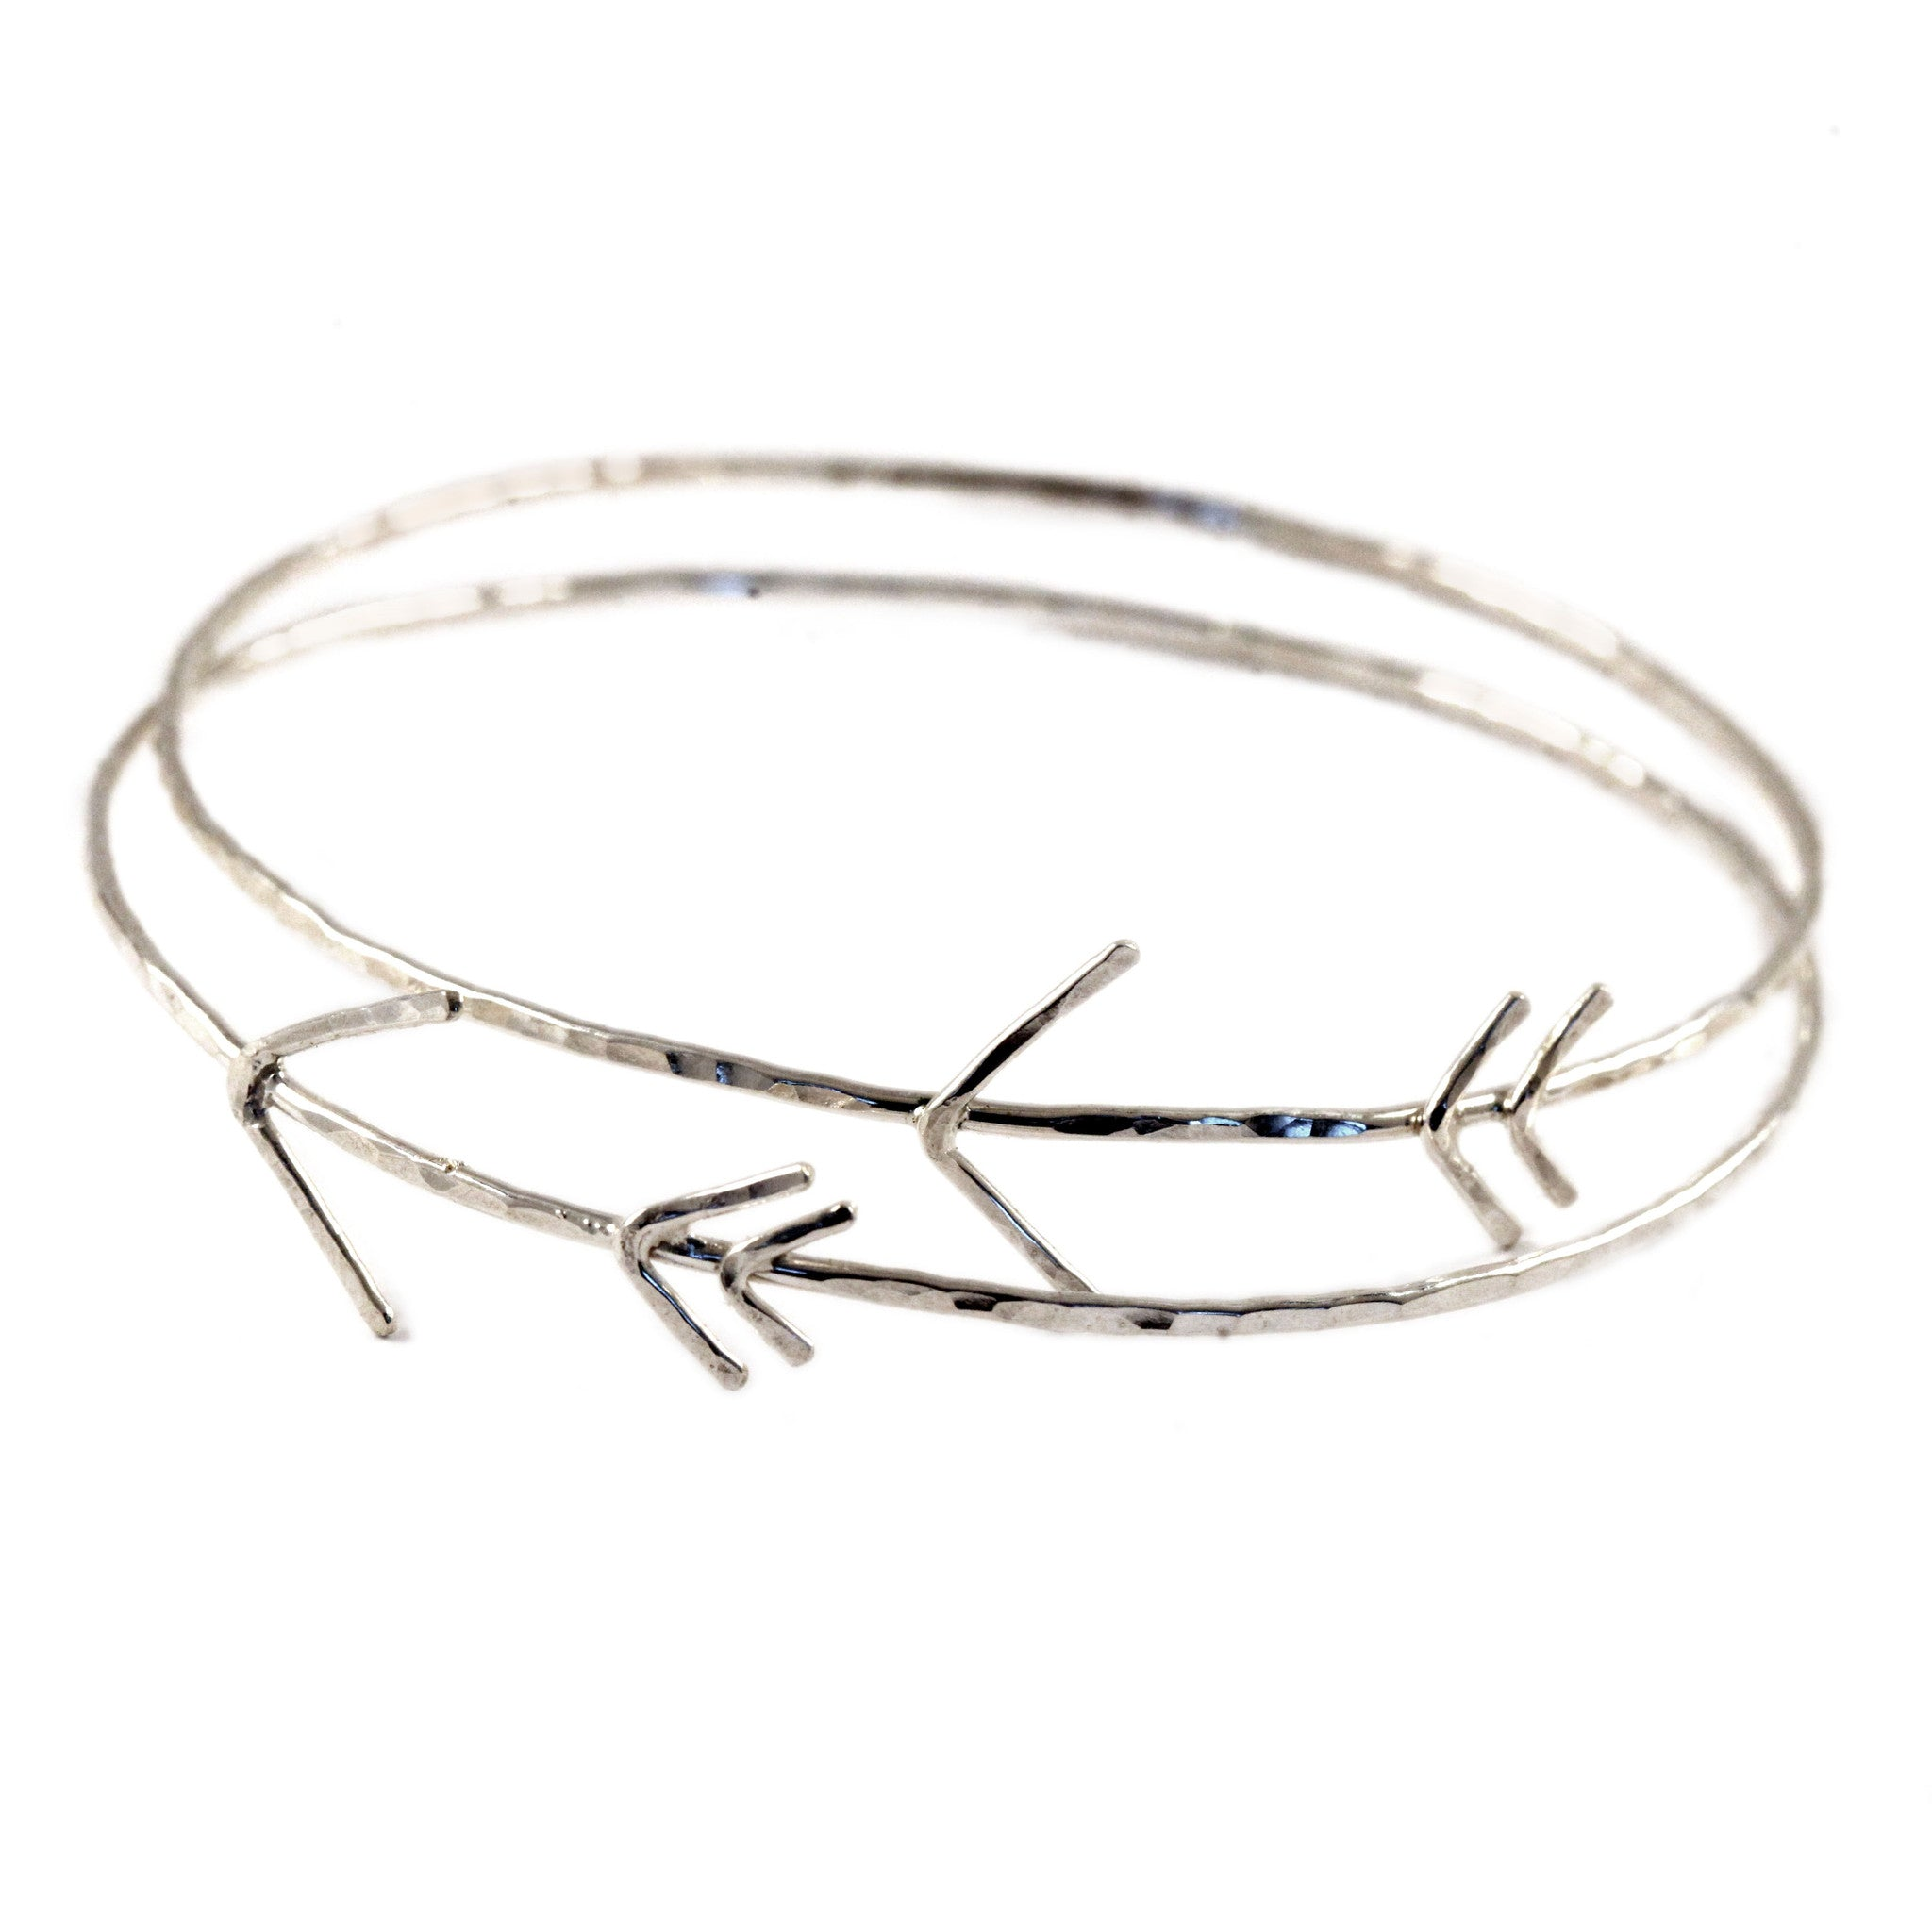 b daphne kookii arrow skinny gold bracelet simple products